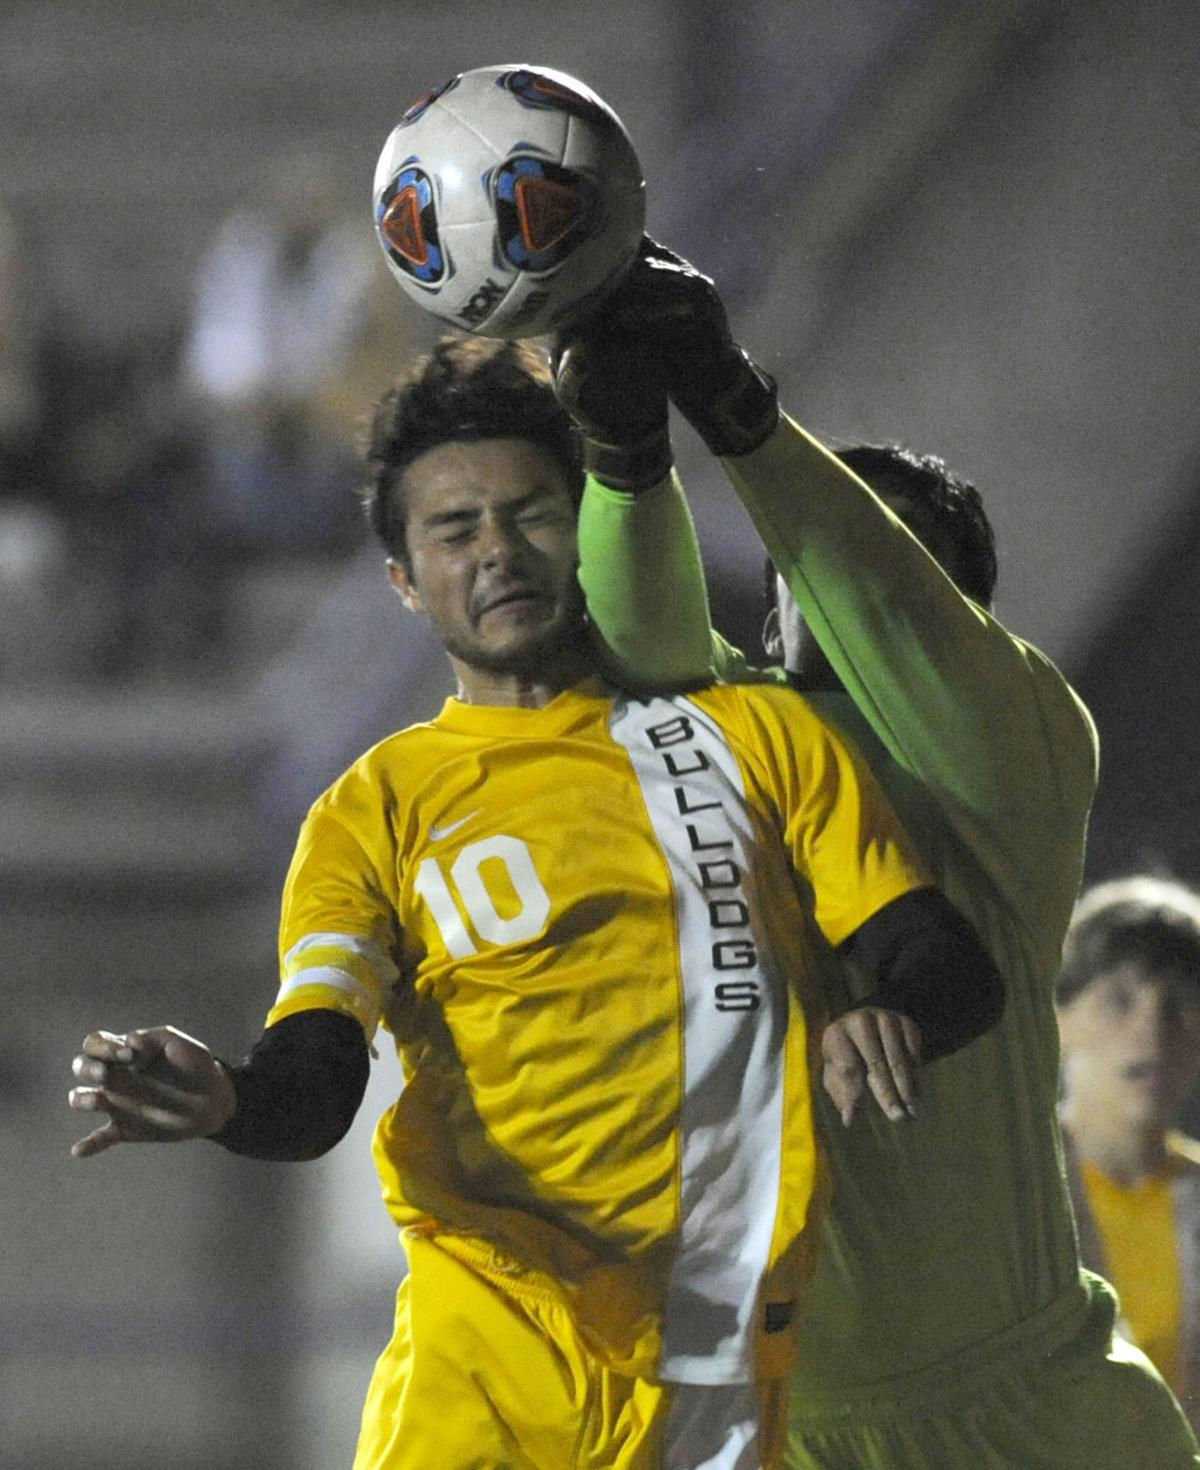 Pirates, Bulldogs end in scoreless tie